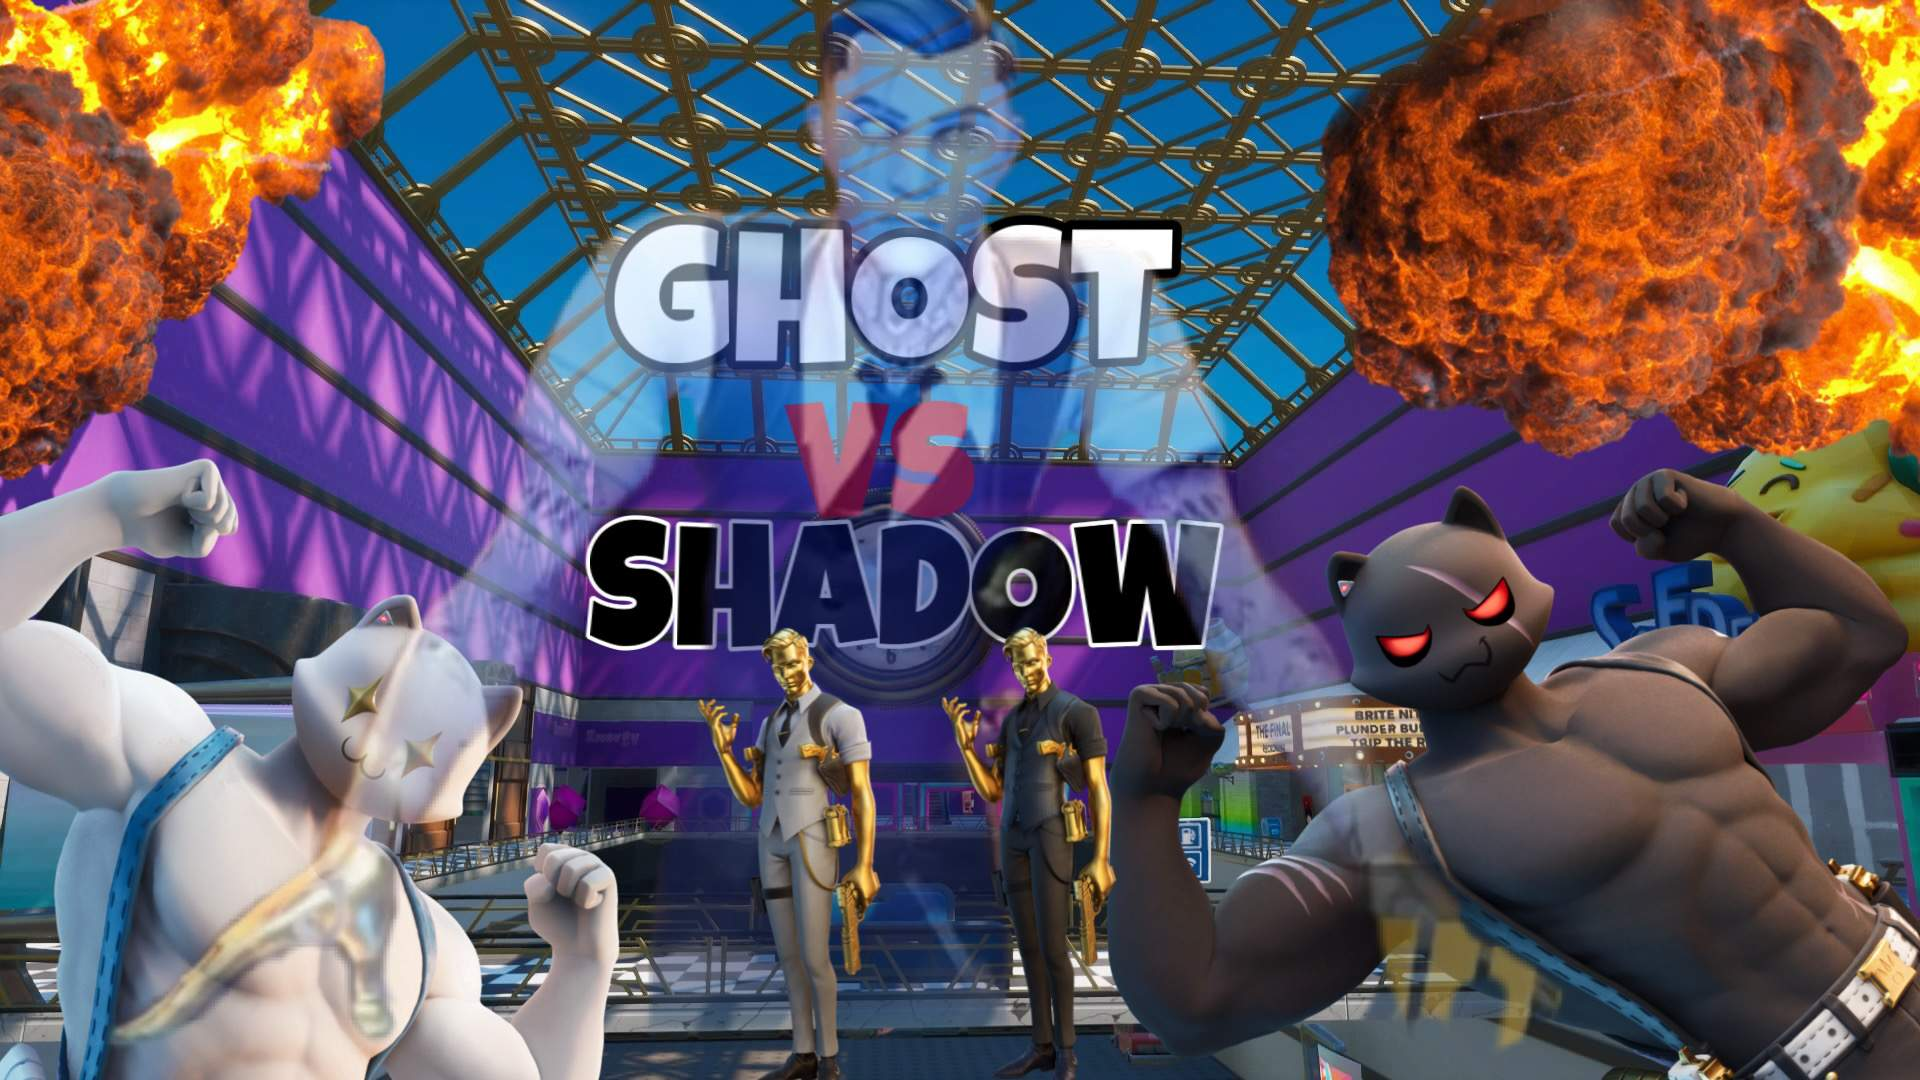 GHOST VS SHADOW MALL WARS